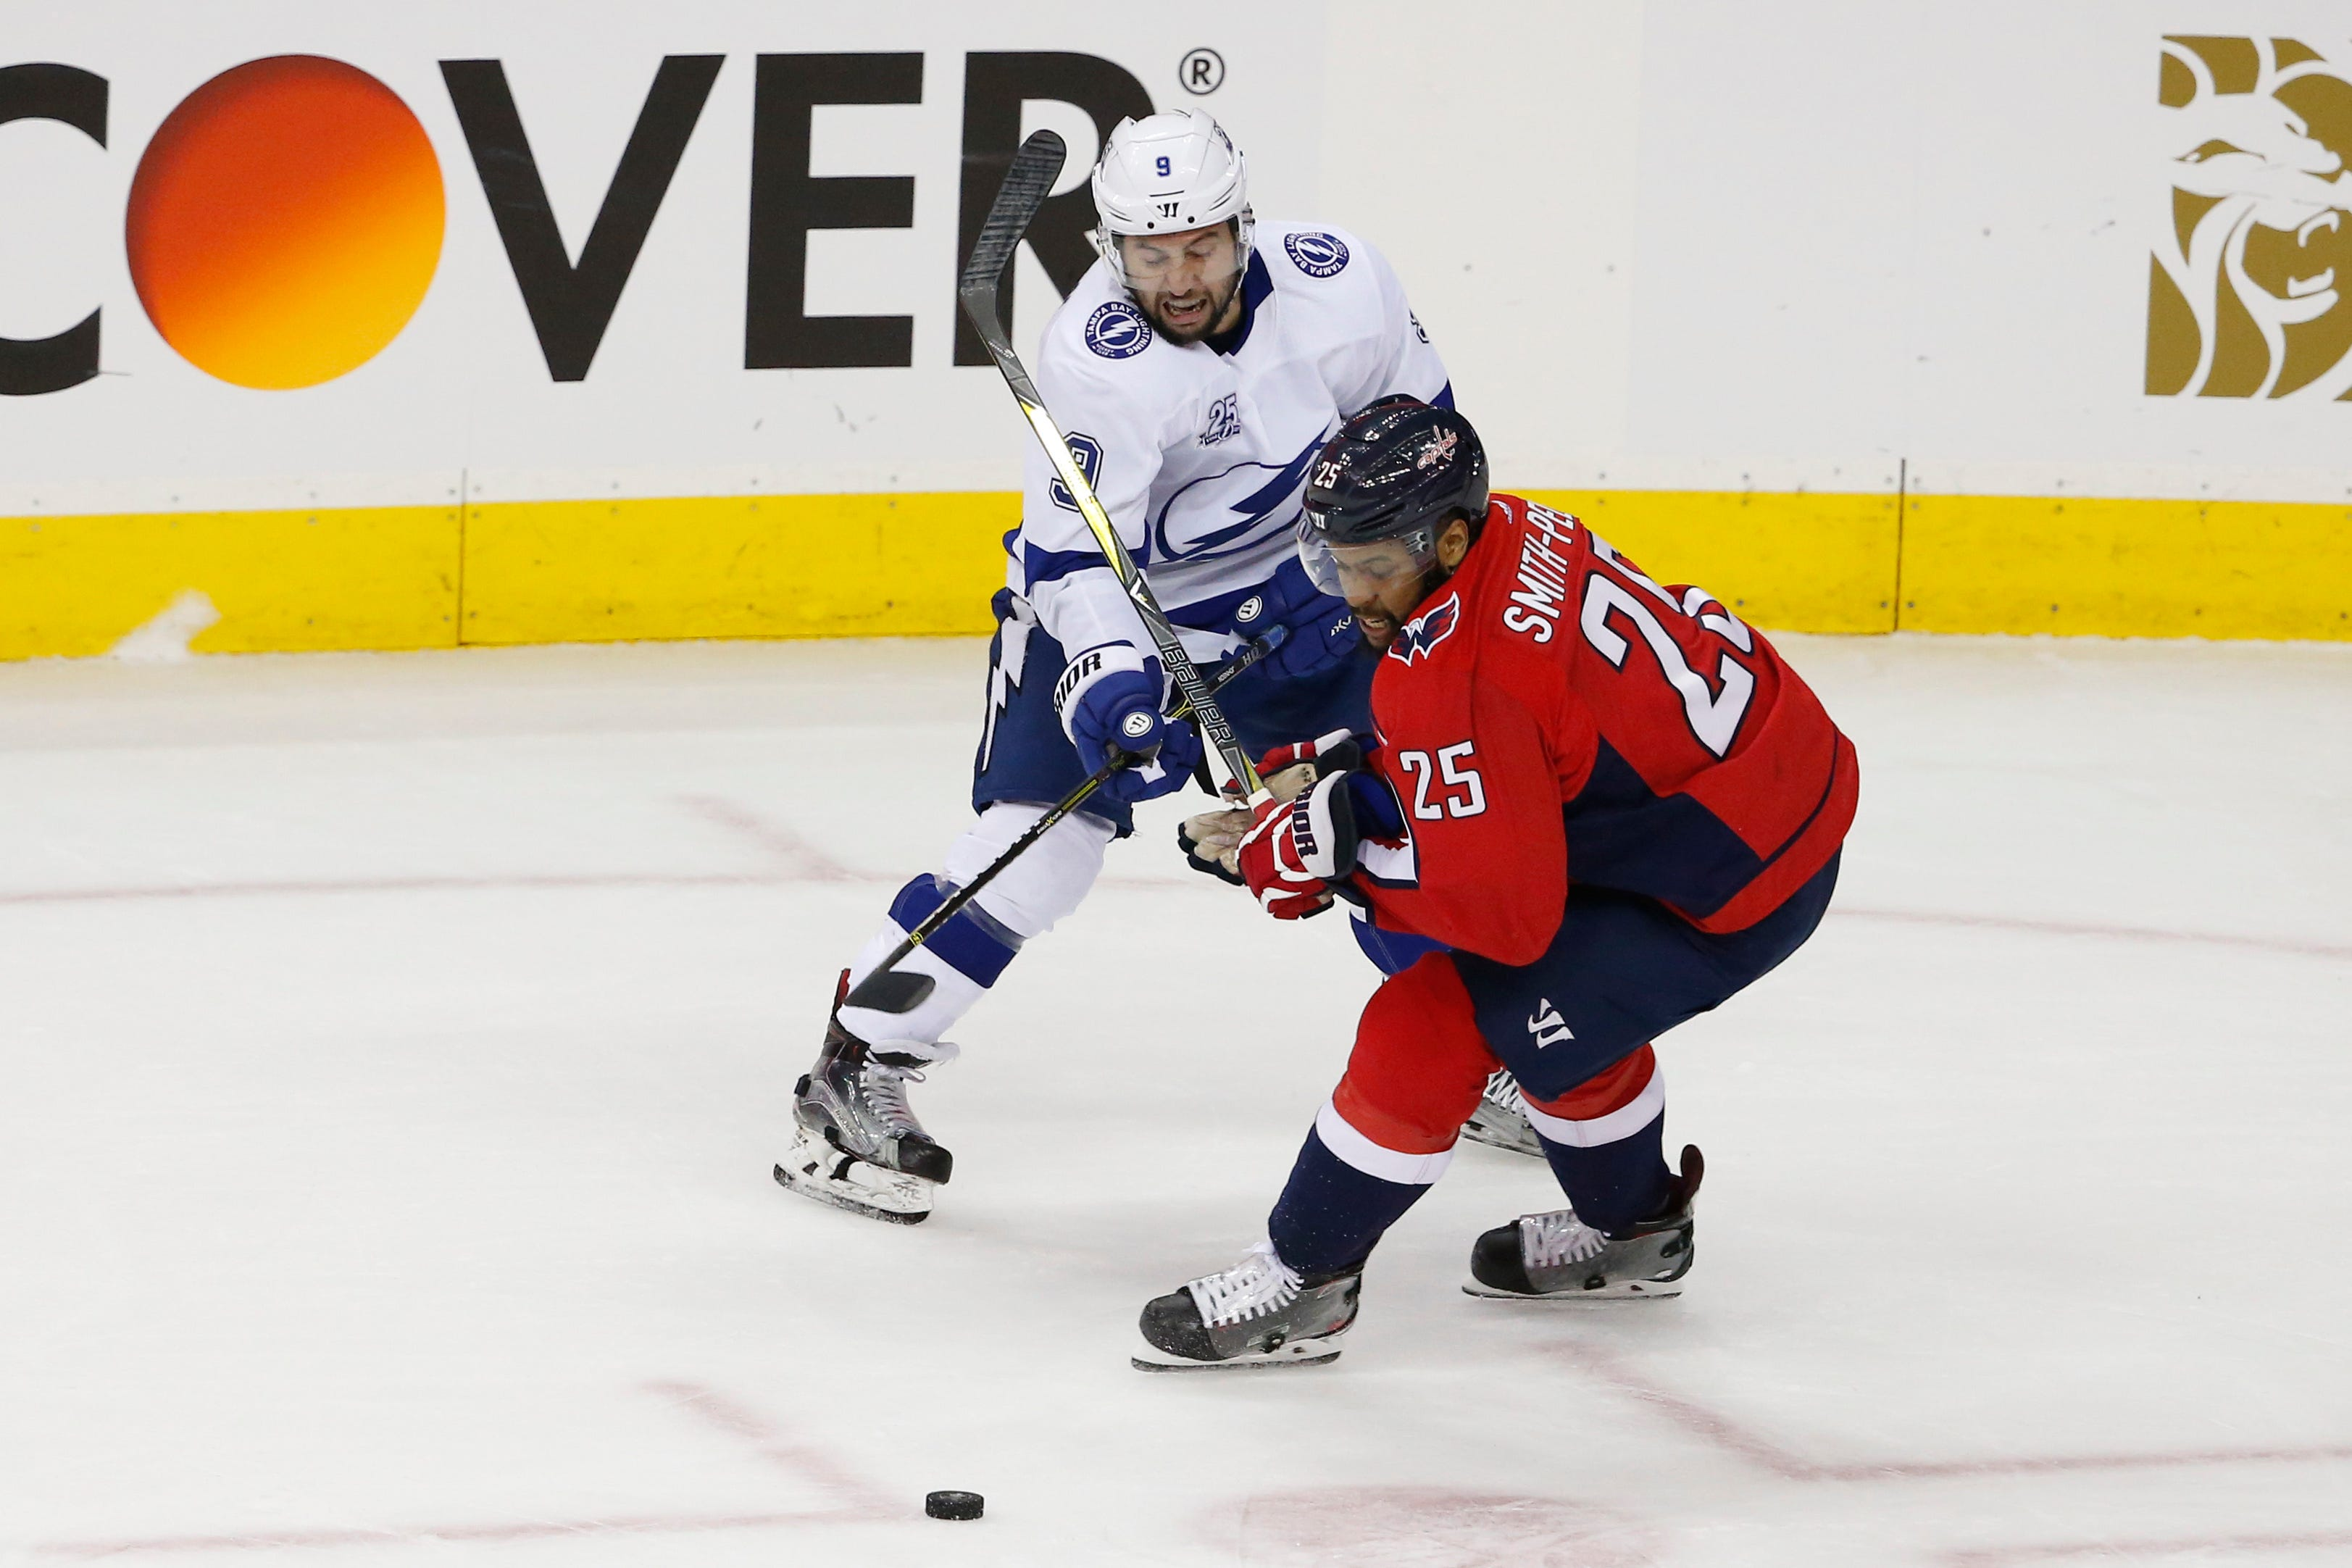 Tampa Bay Lightning center Tyler Johnson, left, passes the puck as Washington Capitals right wing Devante Smith-Pelly defends during the first period in game three of the Eastern Conference Final in the 2018 Stanley Cup Playoffs at Capital One Arena